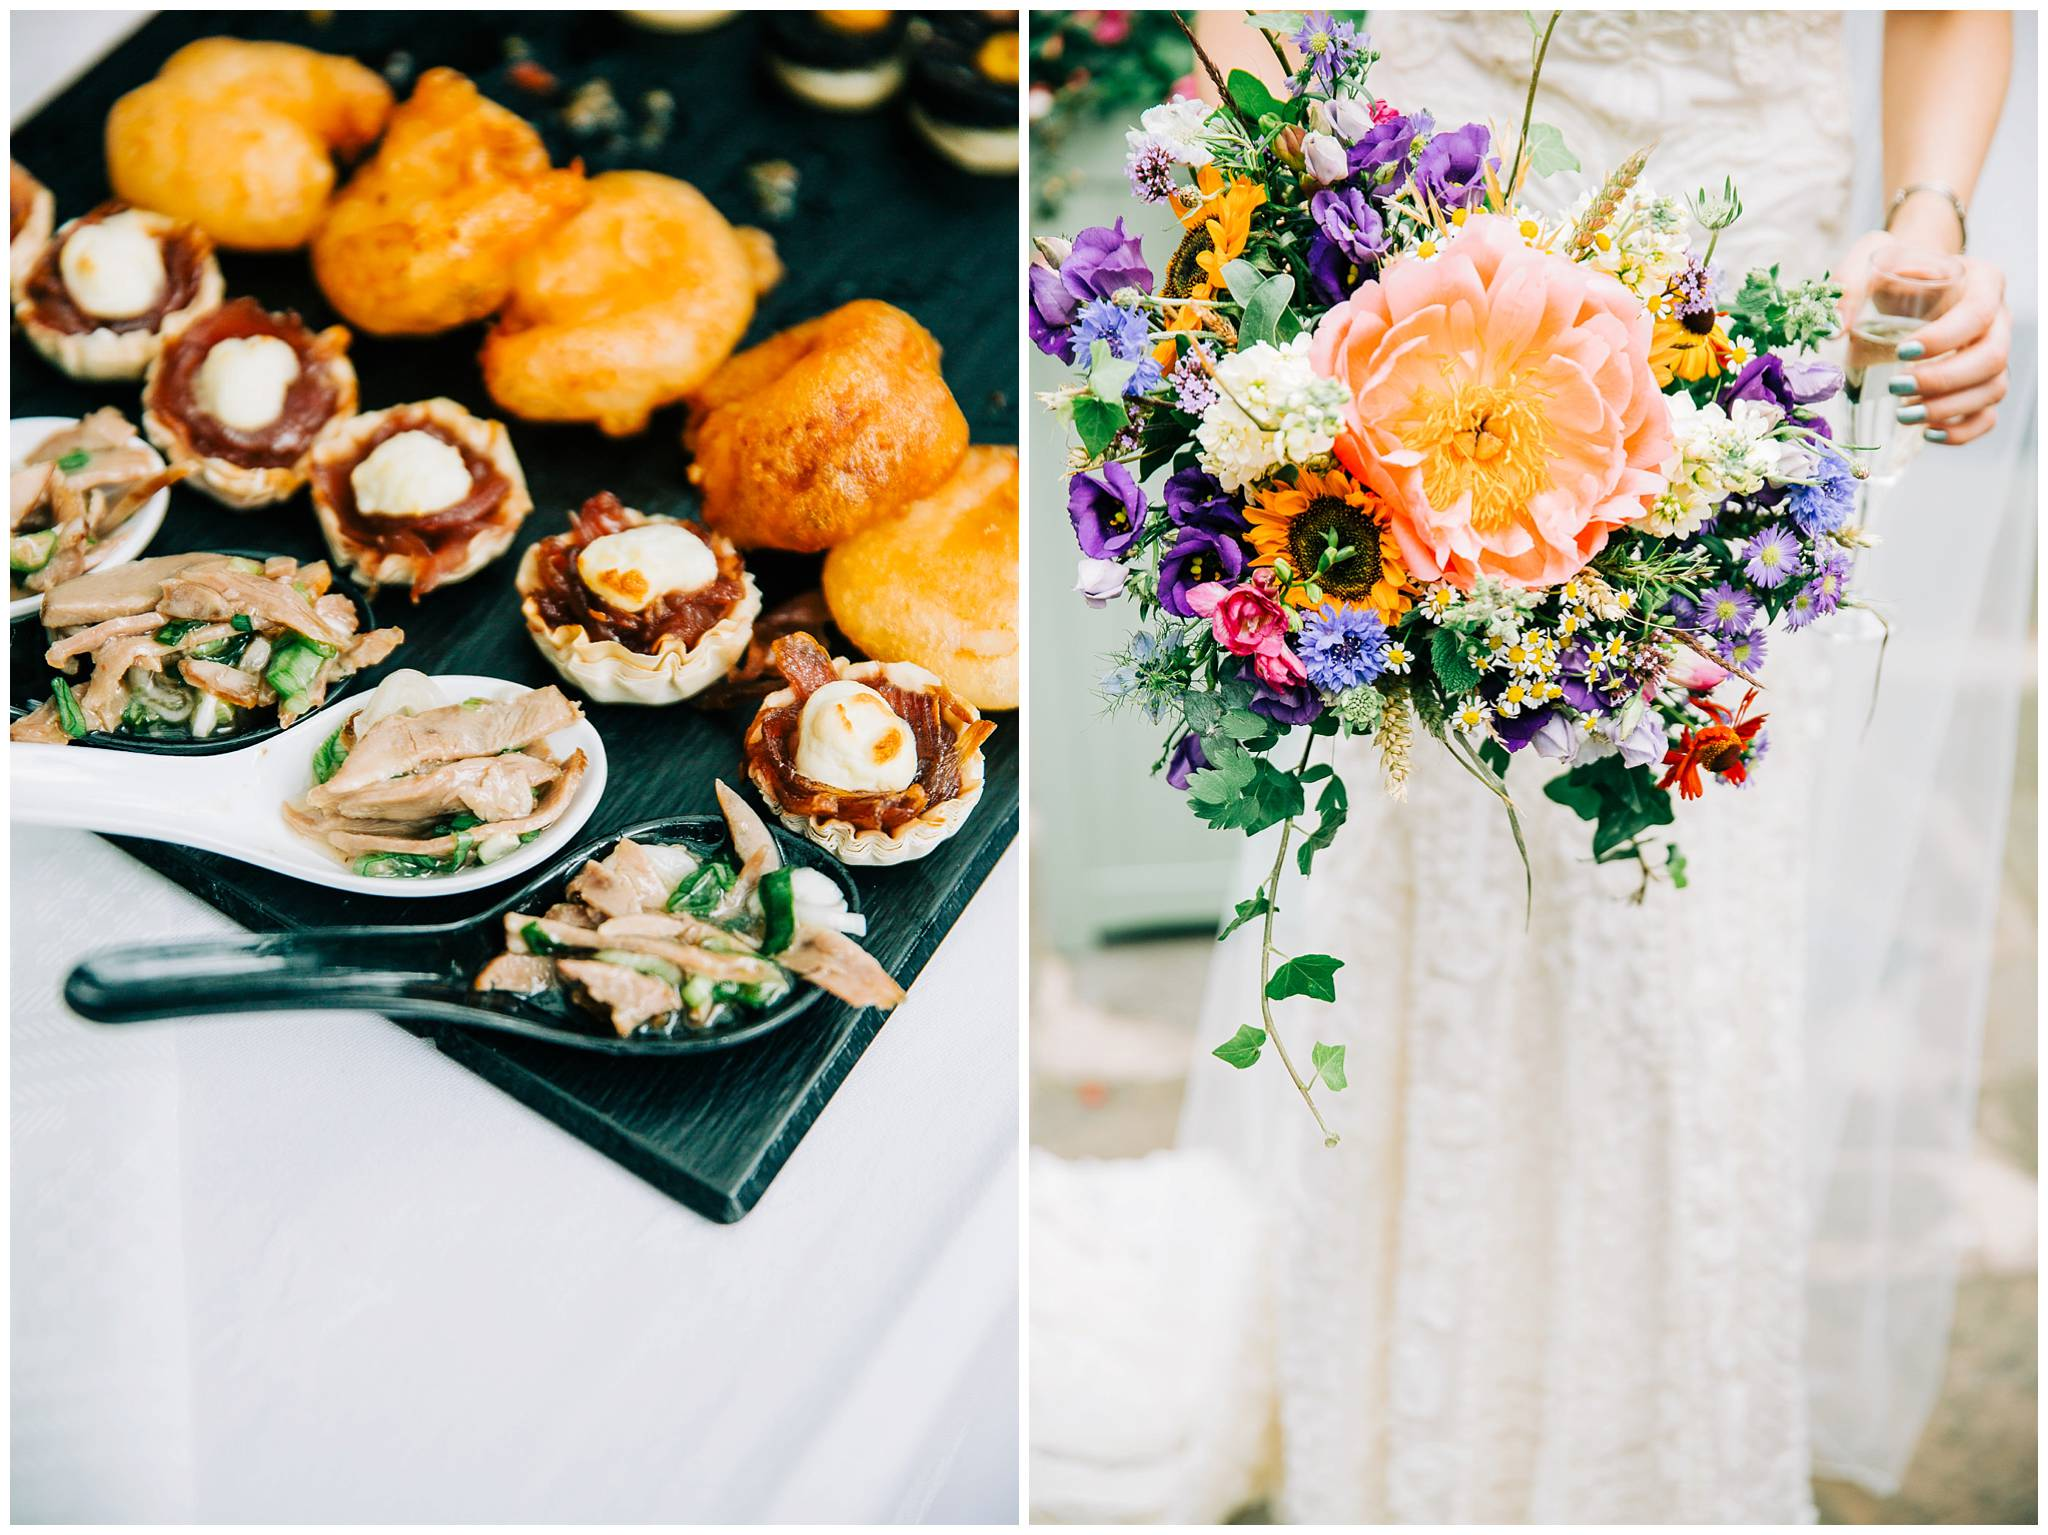 scrumptious canapes and wild floral bouquet